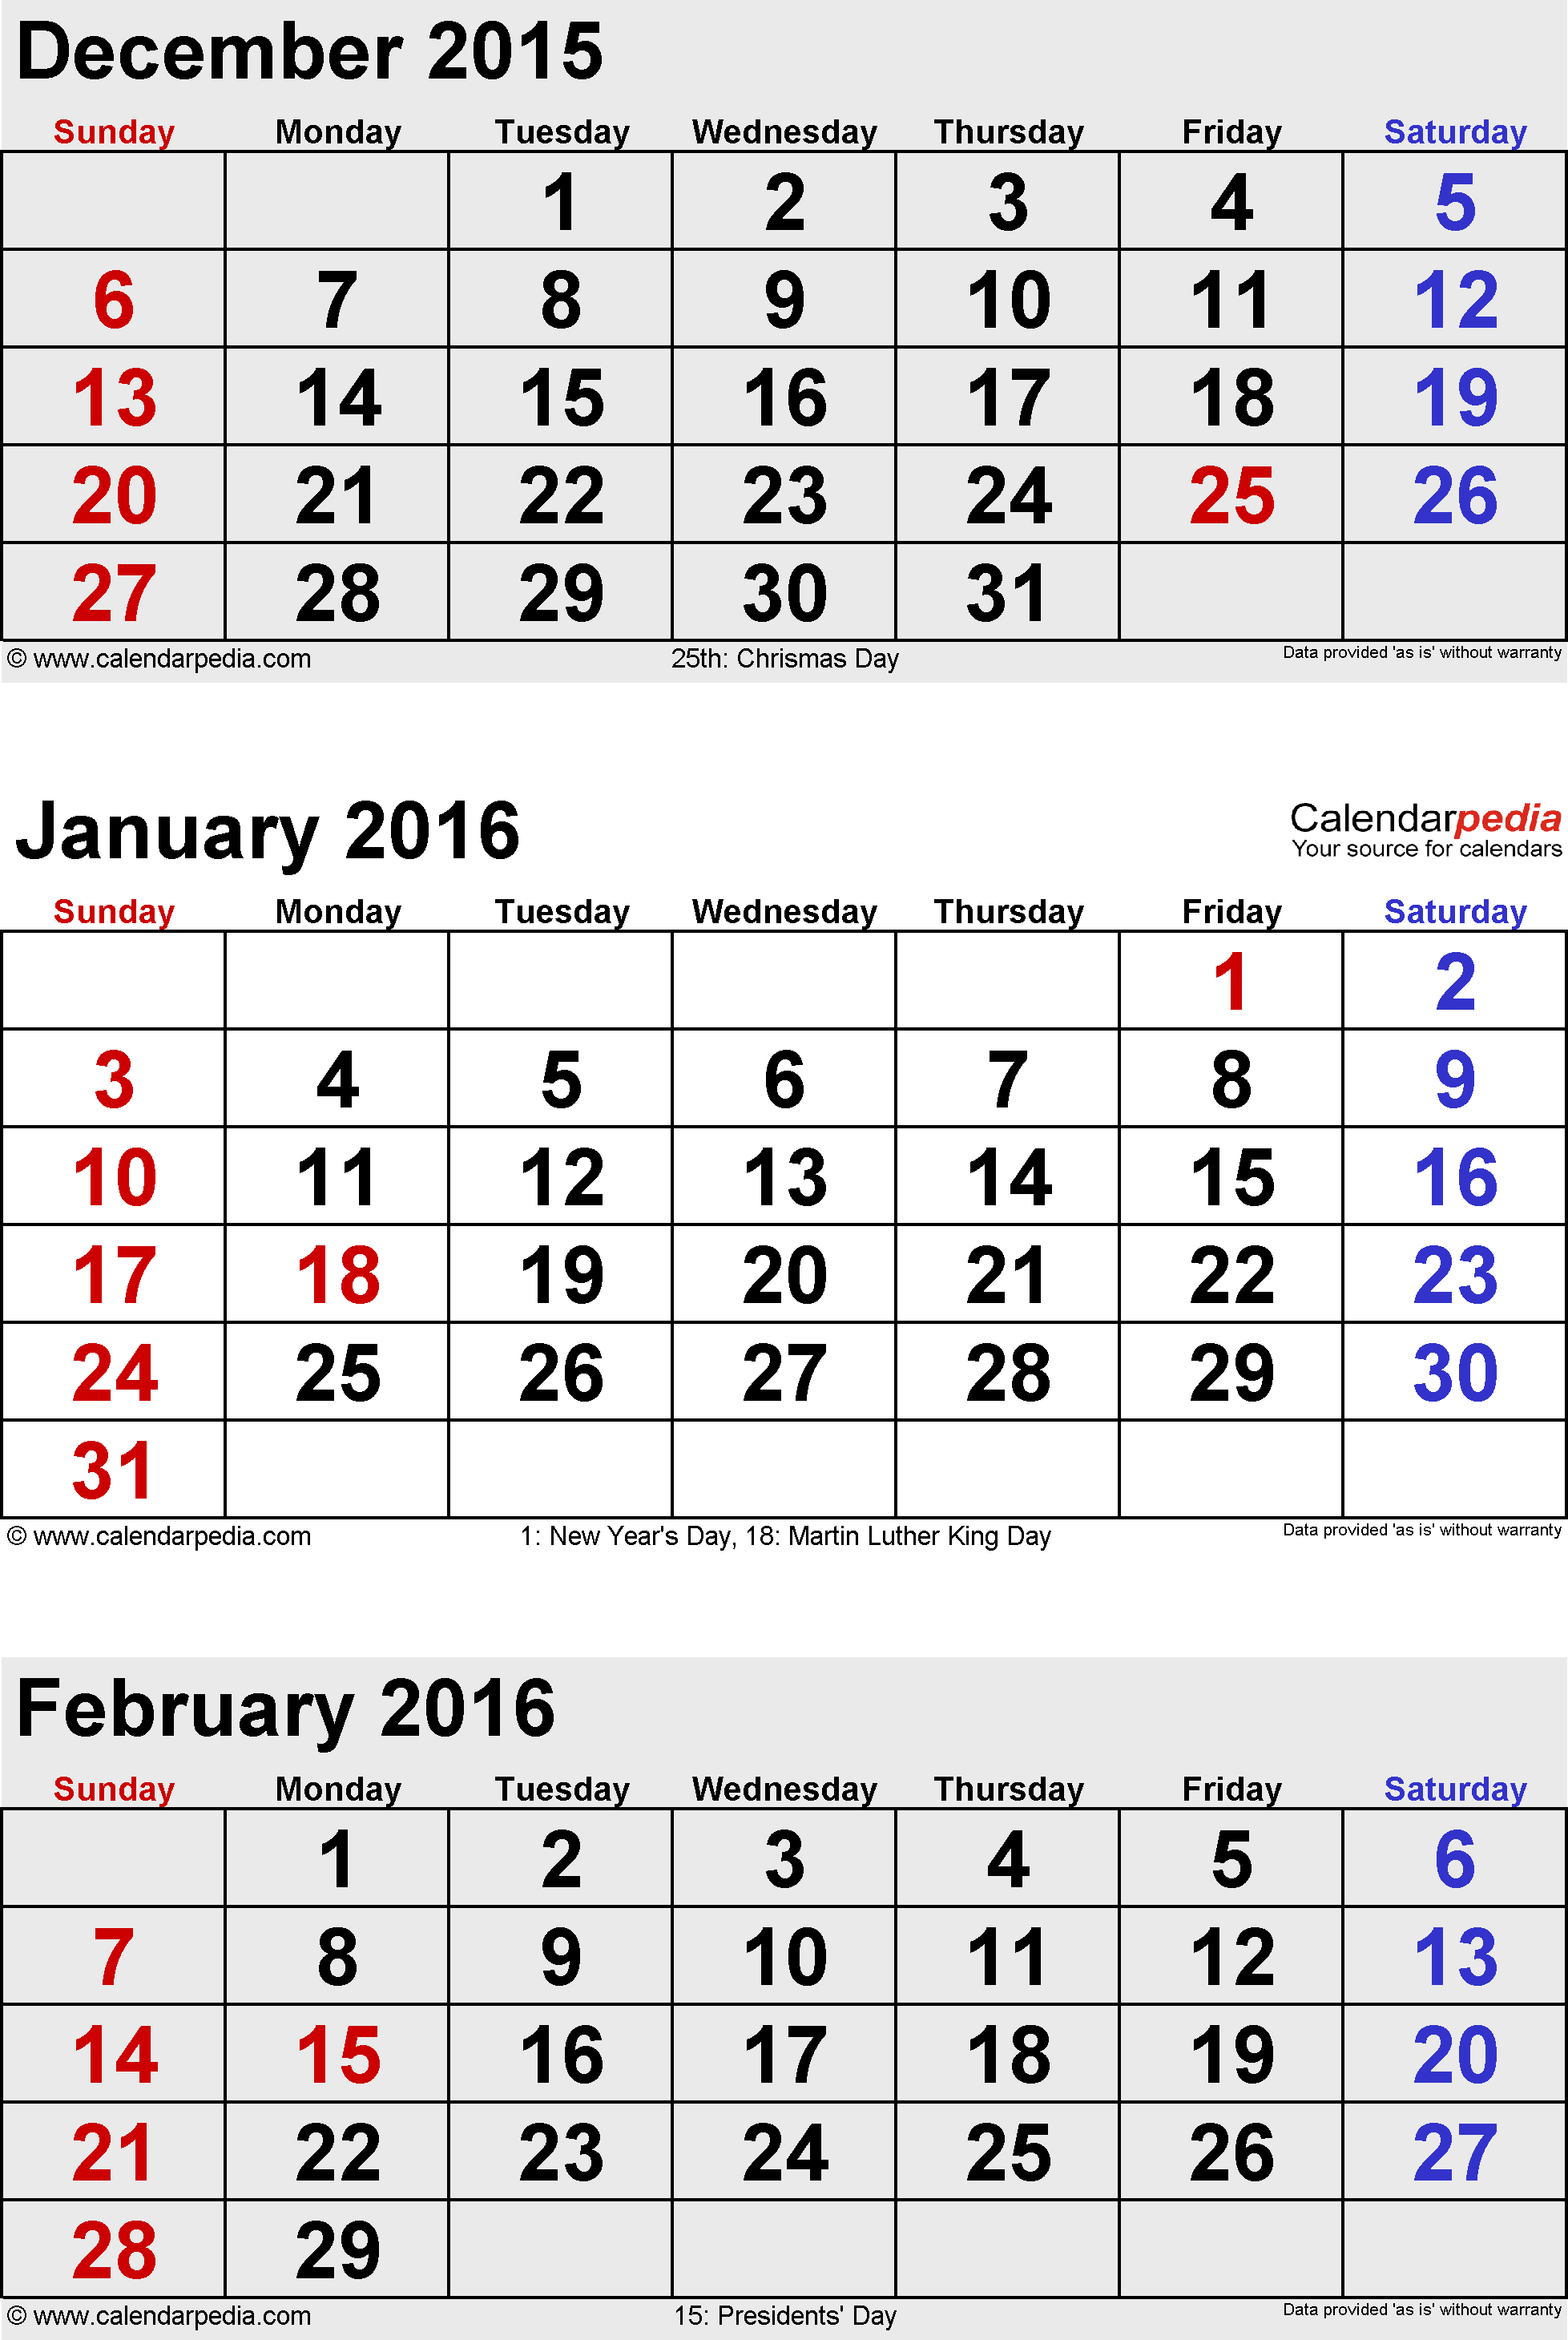 3 months calendar January/February/March 2016 in portrait format